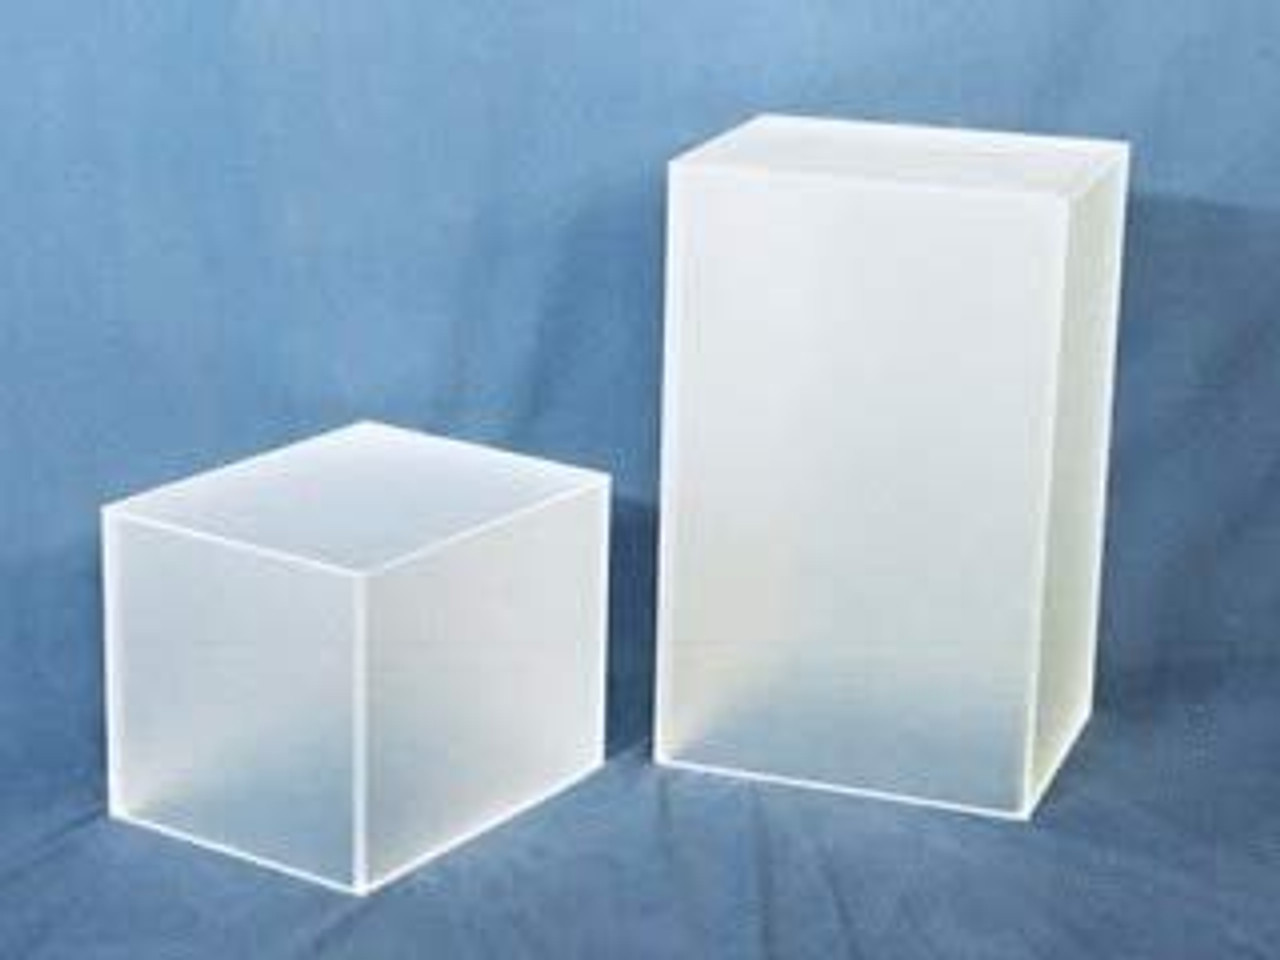 Rectangular Acrylic Display Cube, Frosted Finish, White, 24 Inch